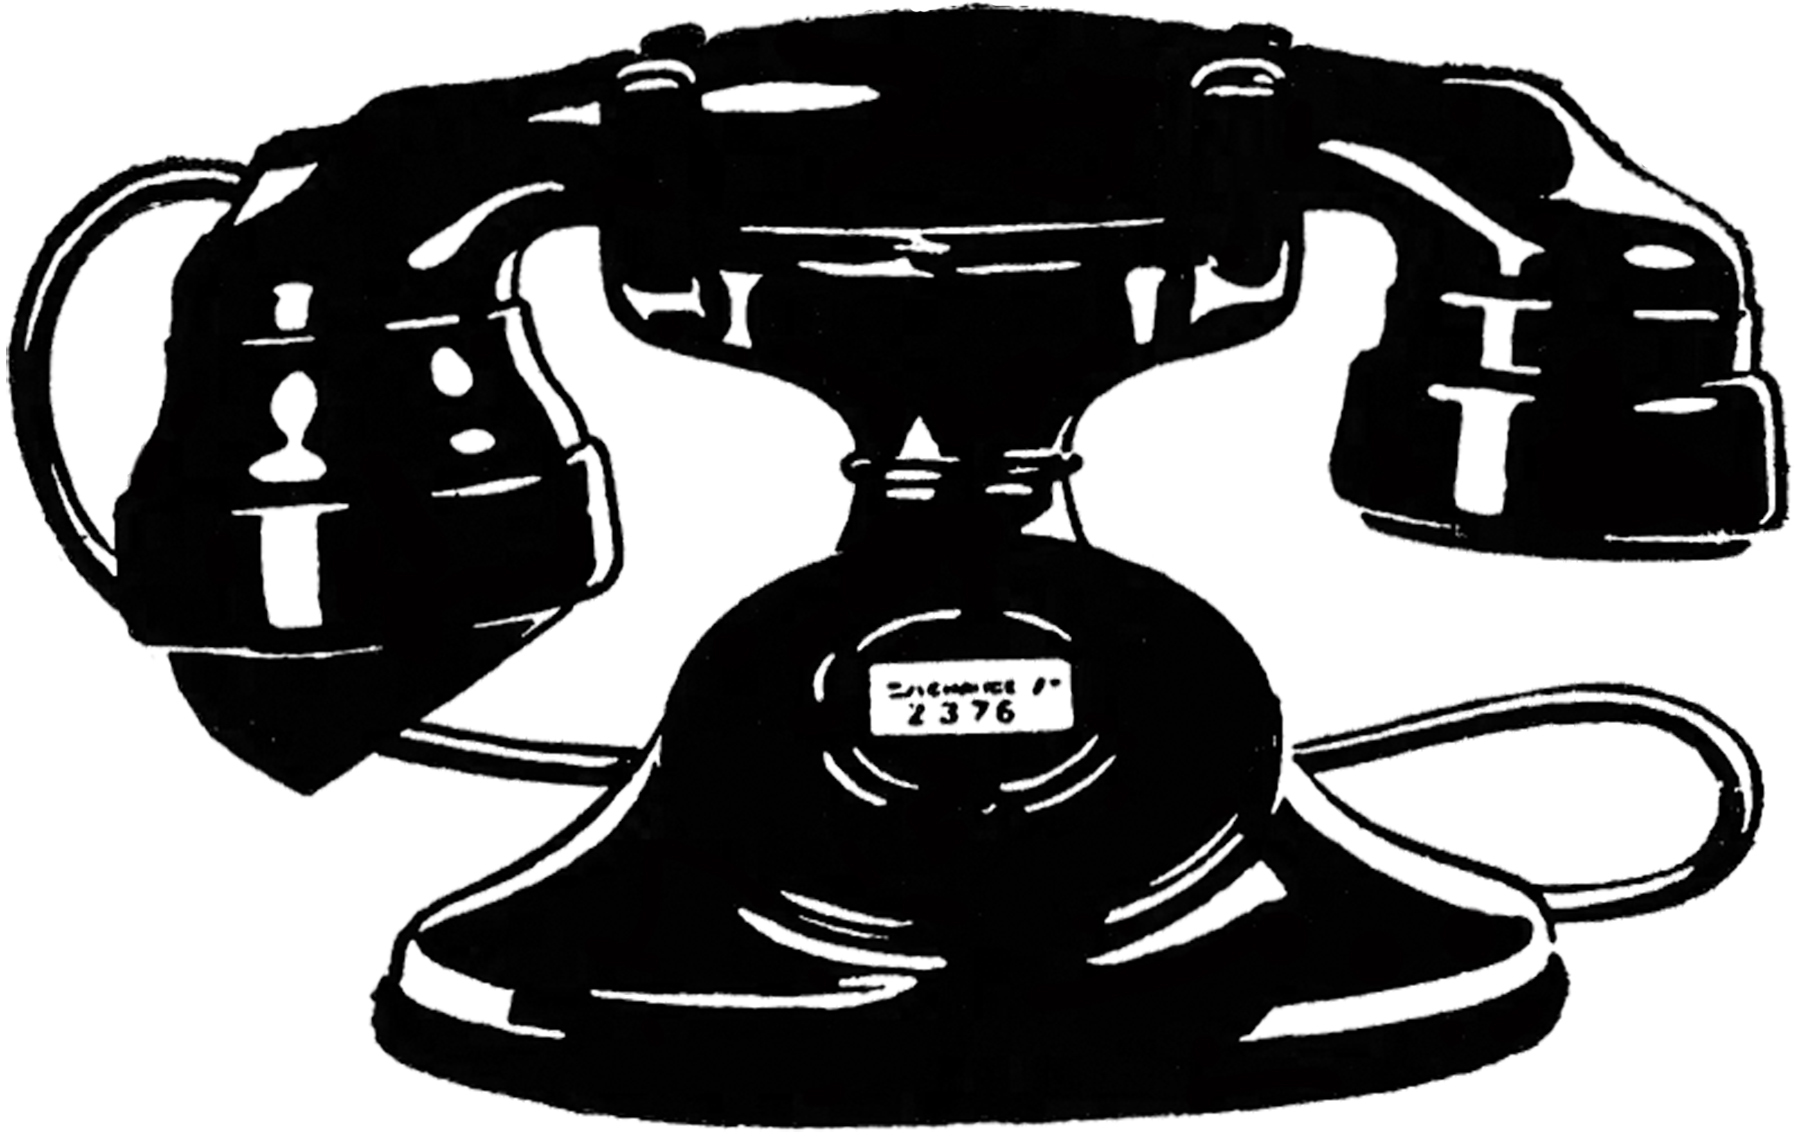 Old fashioned phone clipart png black and white stock 7 Vintage Telephone Images! - The Graphics Fairy png black and white stock